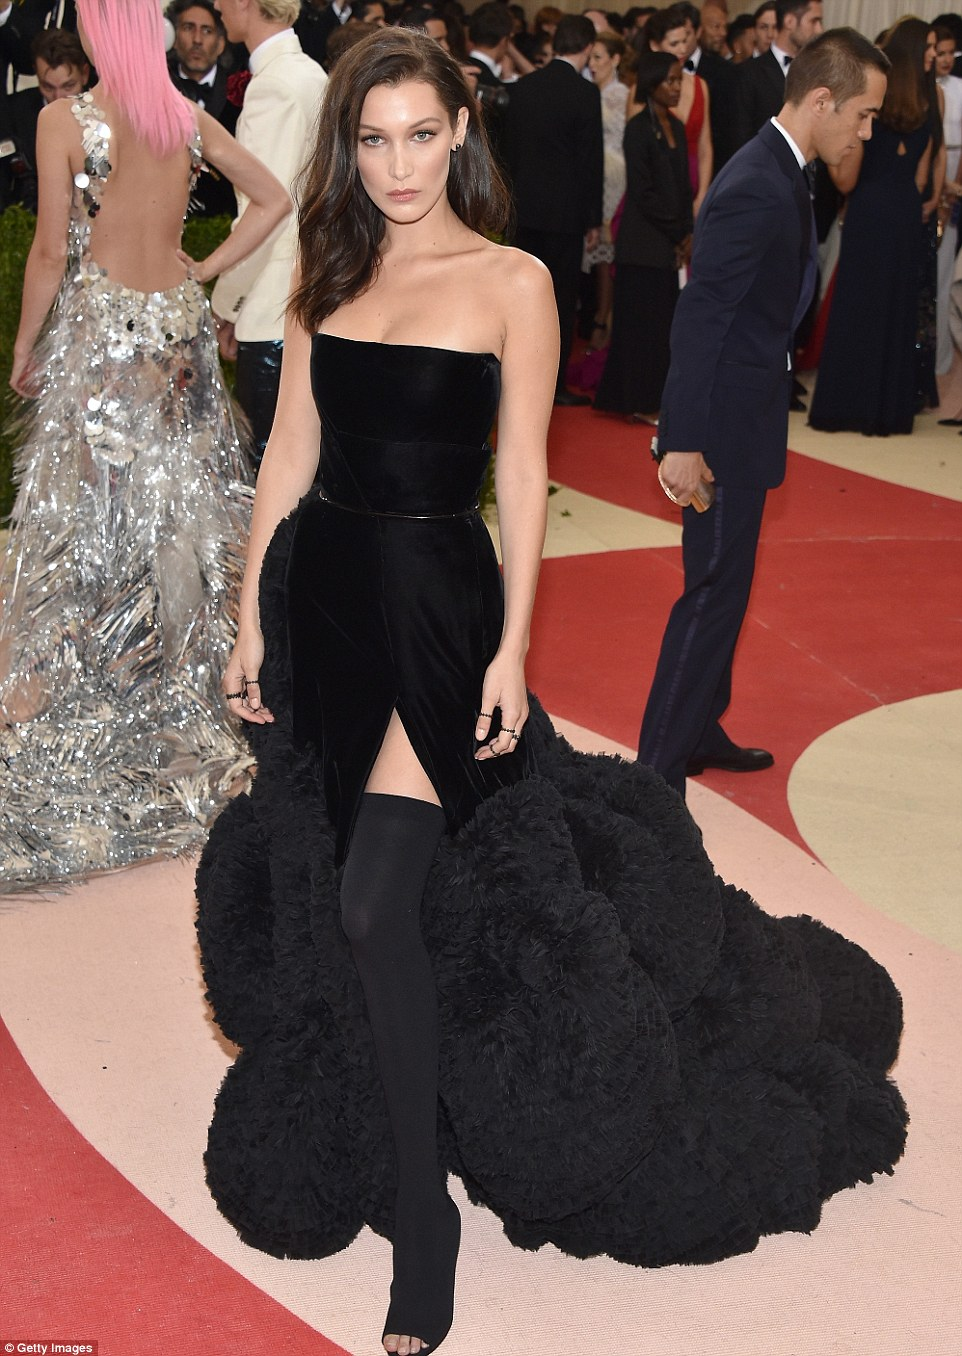 Bella Hadid in Givenchy by RIcardo Tisci Haute Couture